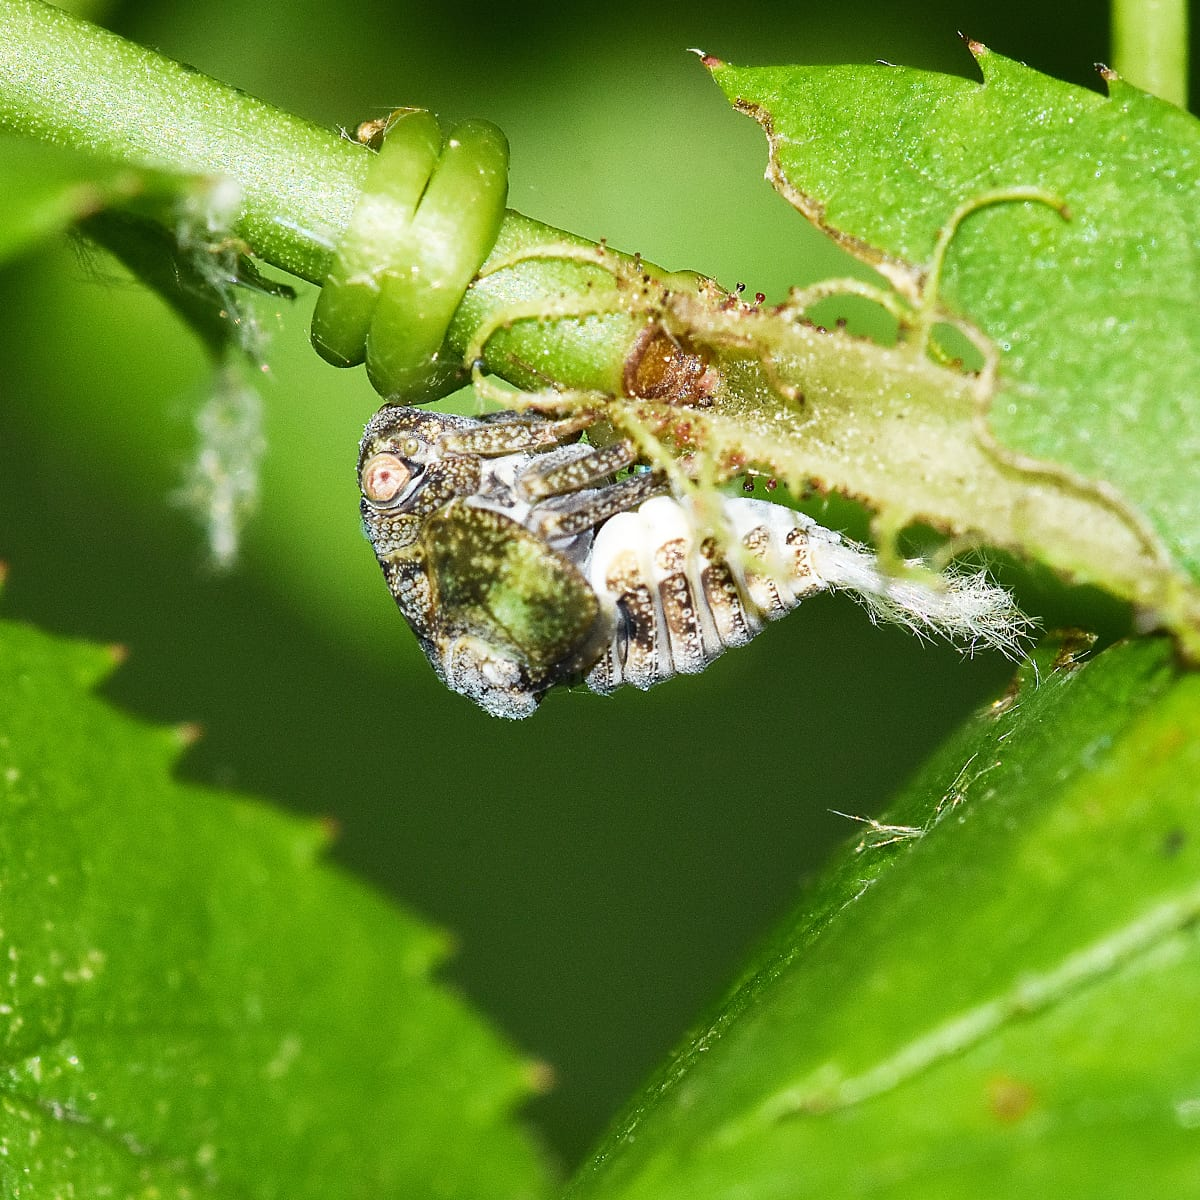 Learn About the Planthopper